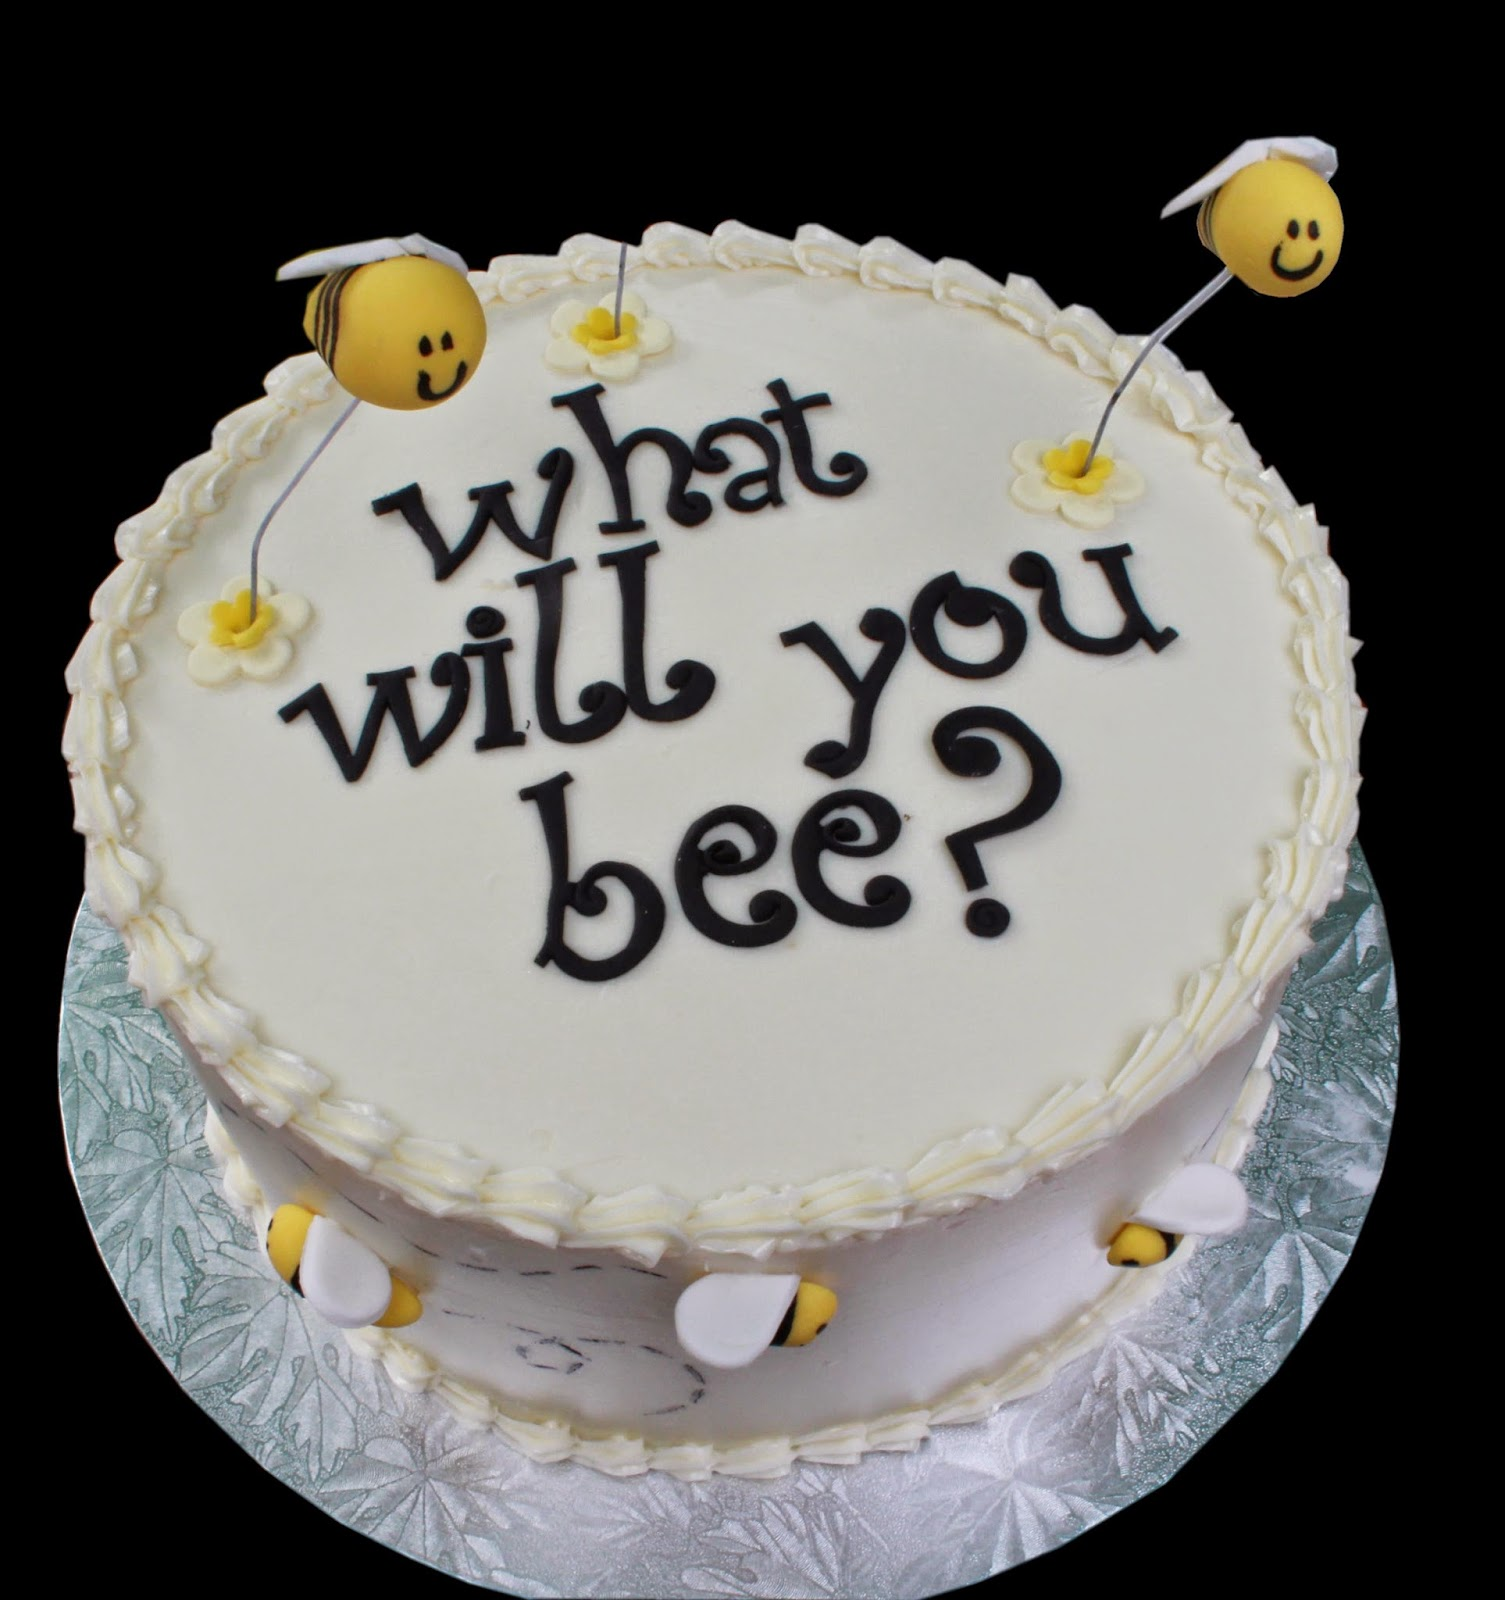 Was To Make The Cake Either Pink Or Blue But With White Icing So Surprise In Cutting Isnt It Such A Cute All Little Bees